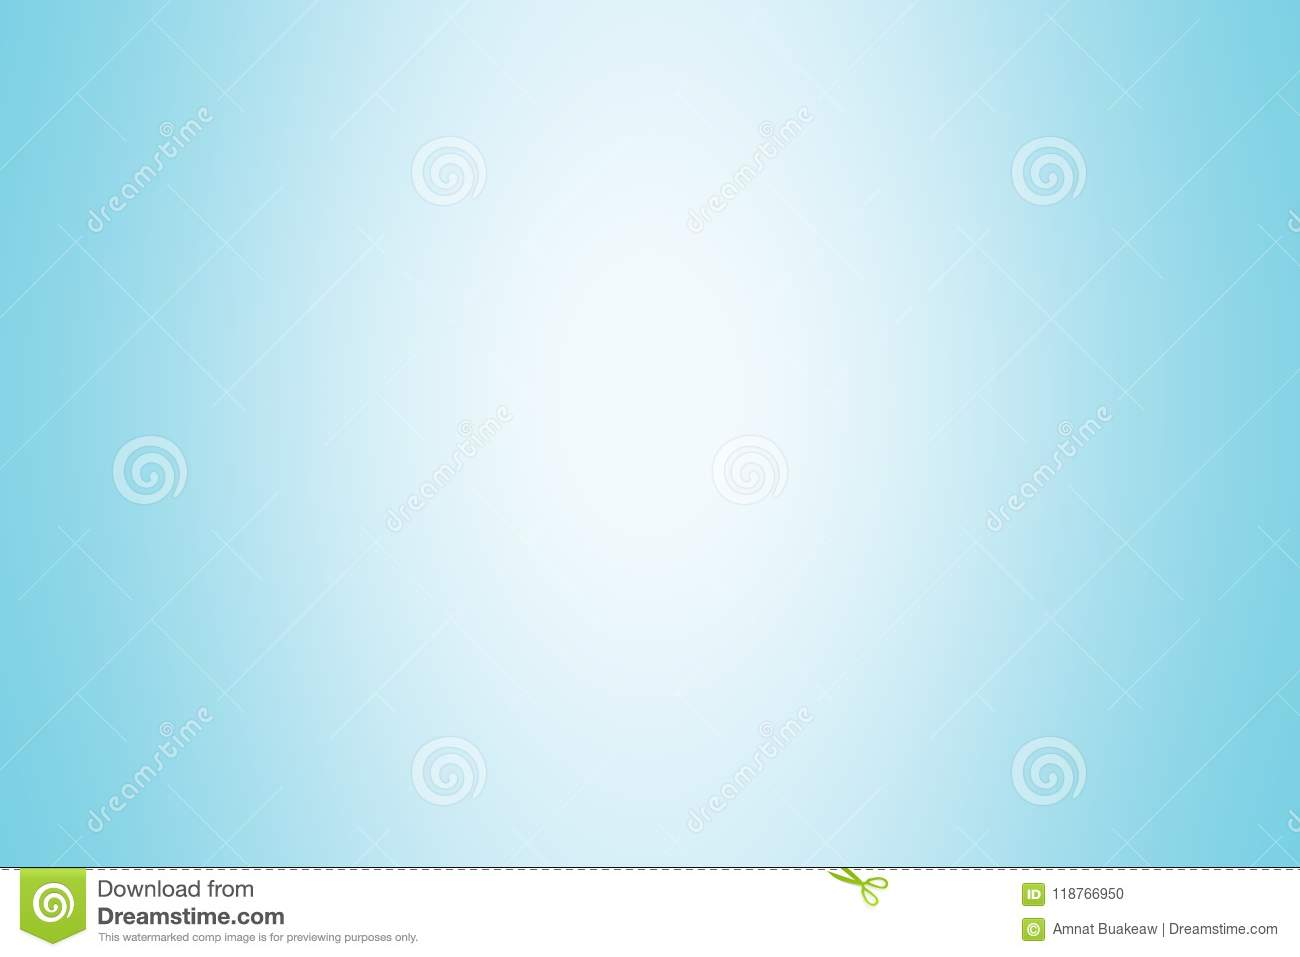 Blue gradient background color soft light, gradient blue soft bright wallpaper beautiful, blue picture gradient hue soft blur